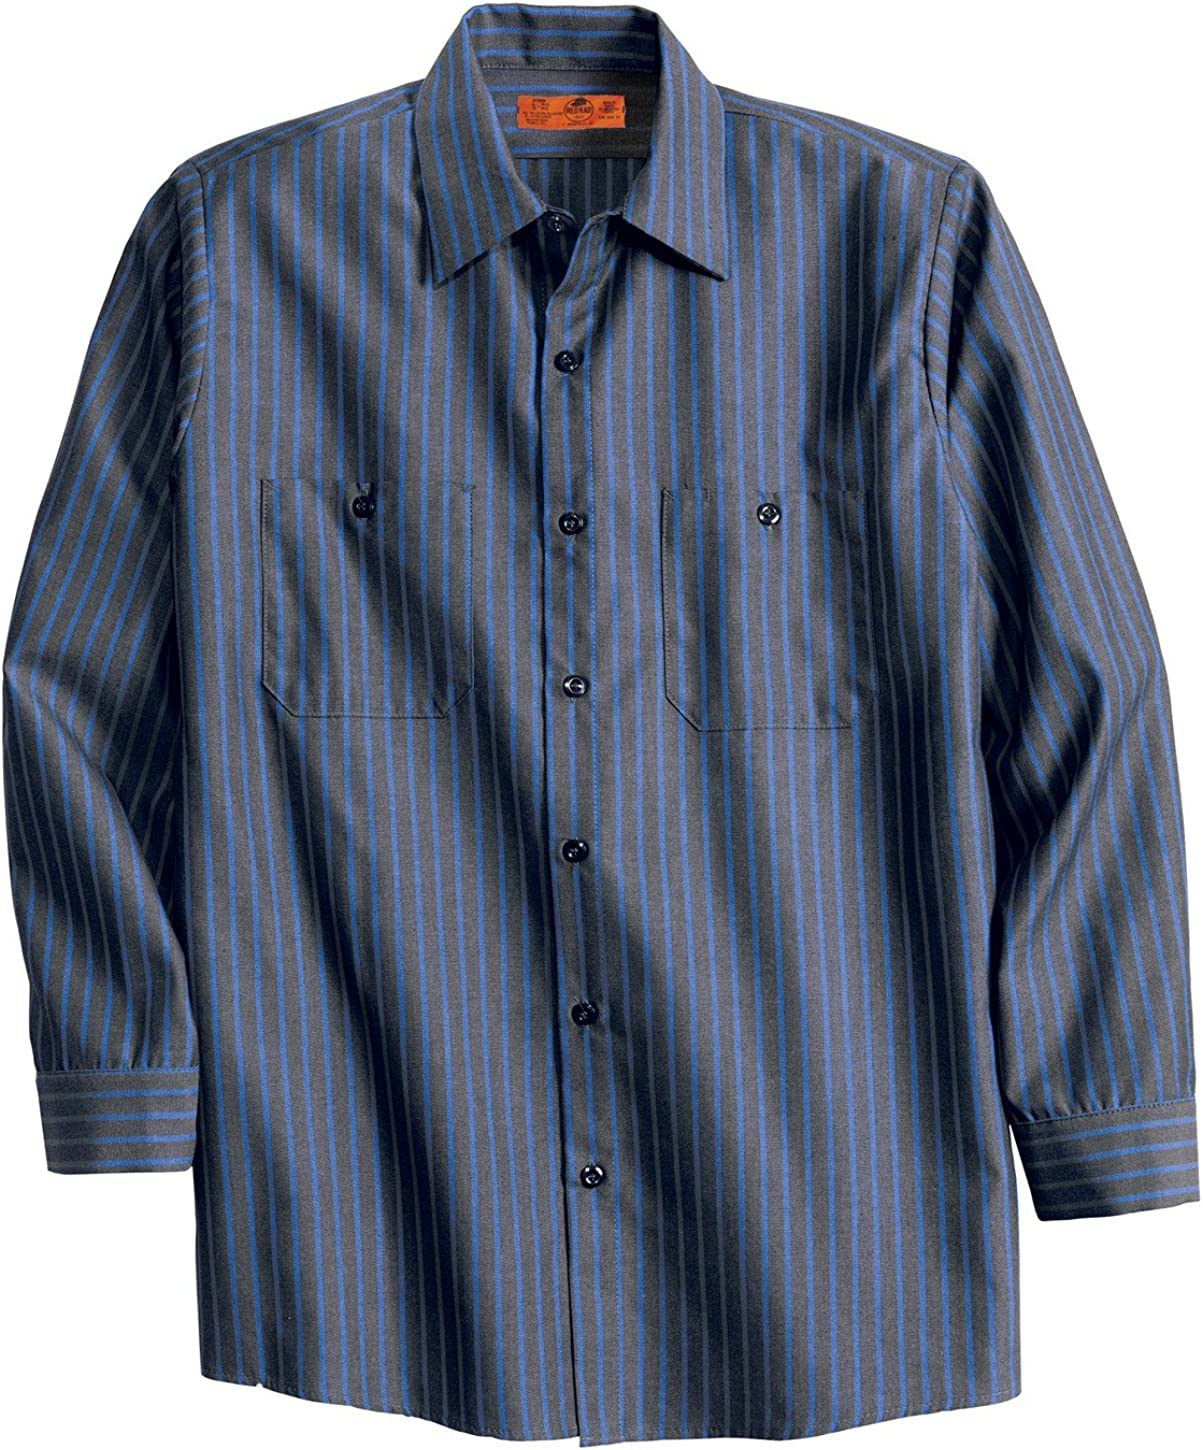 Red Kap Long Sleeve Striped Industrial Work Shirt CS10